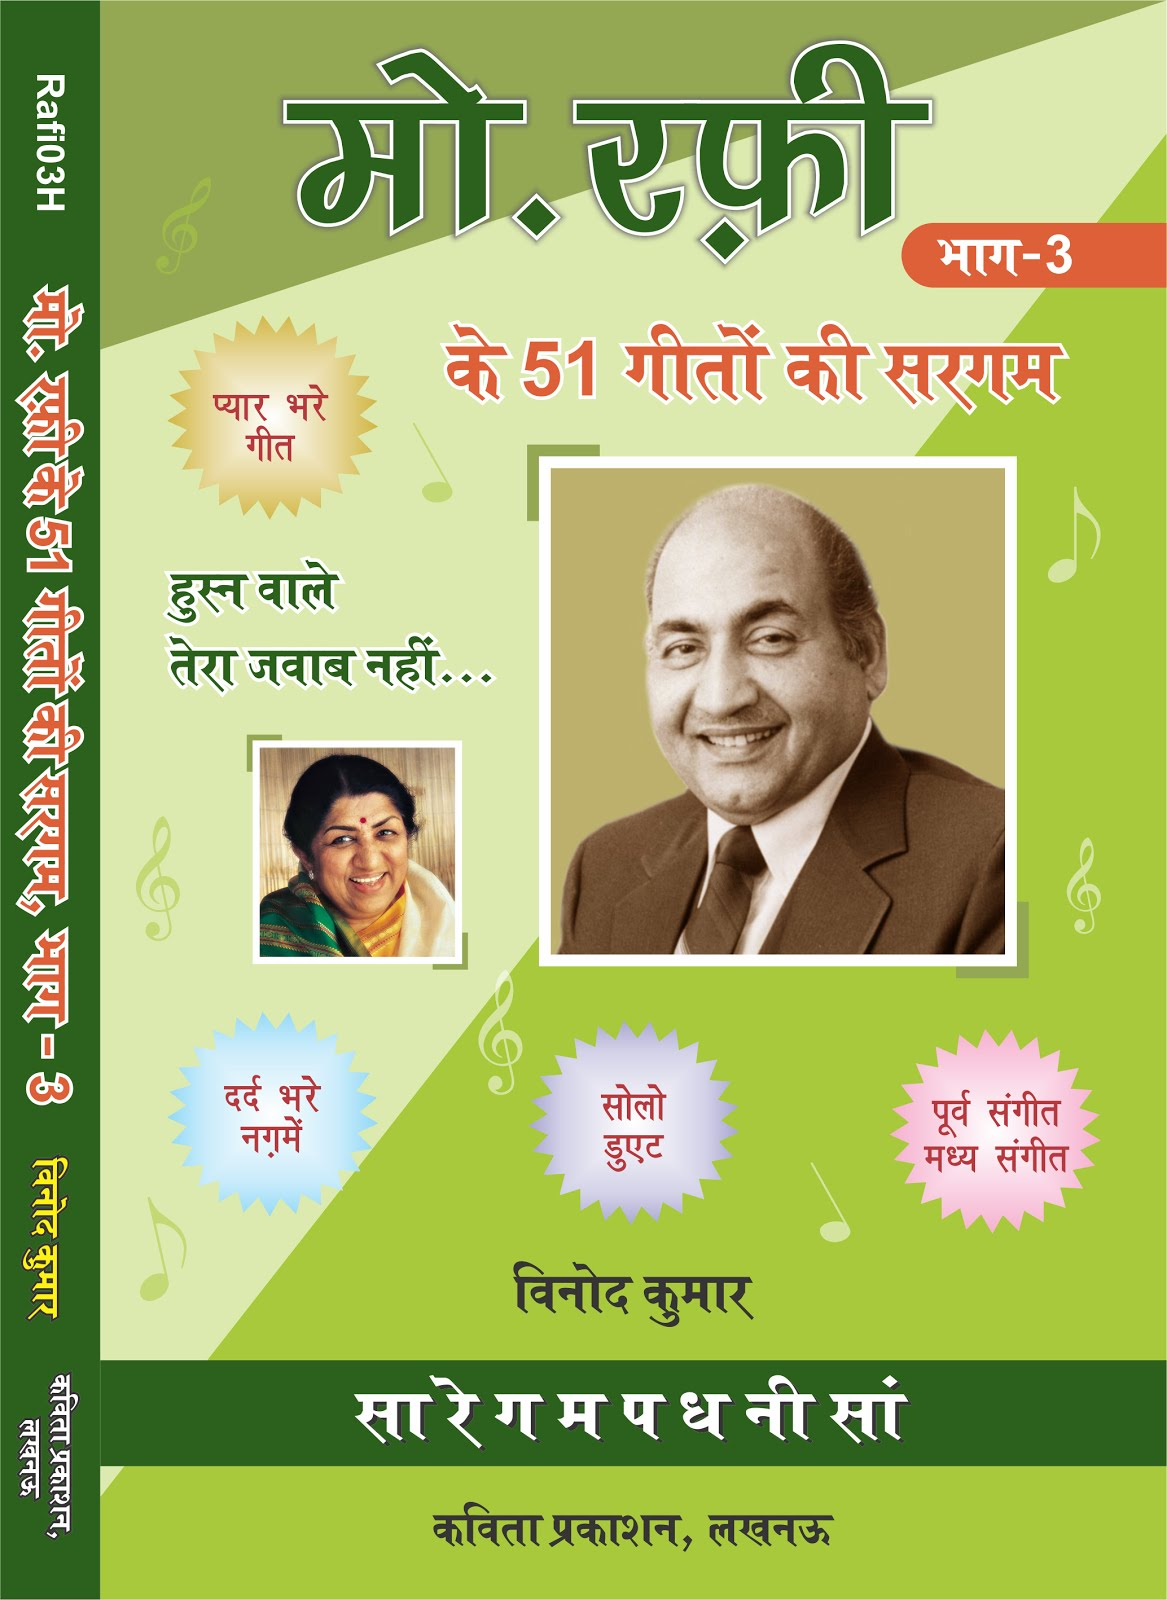 Md. Rafi ke 51 Geeton ki Sargam, Hindi Vol-3